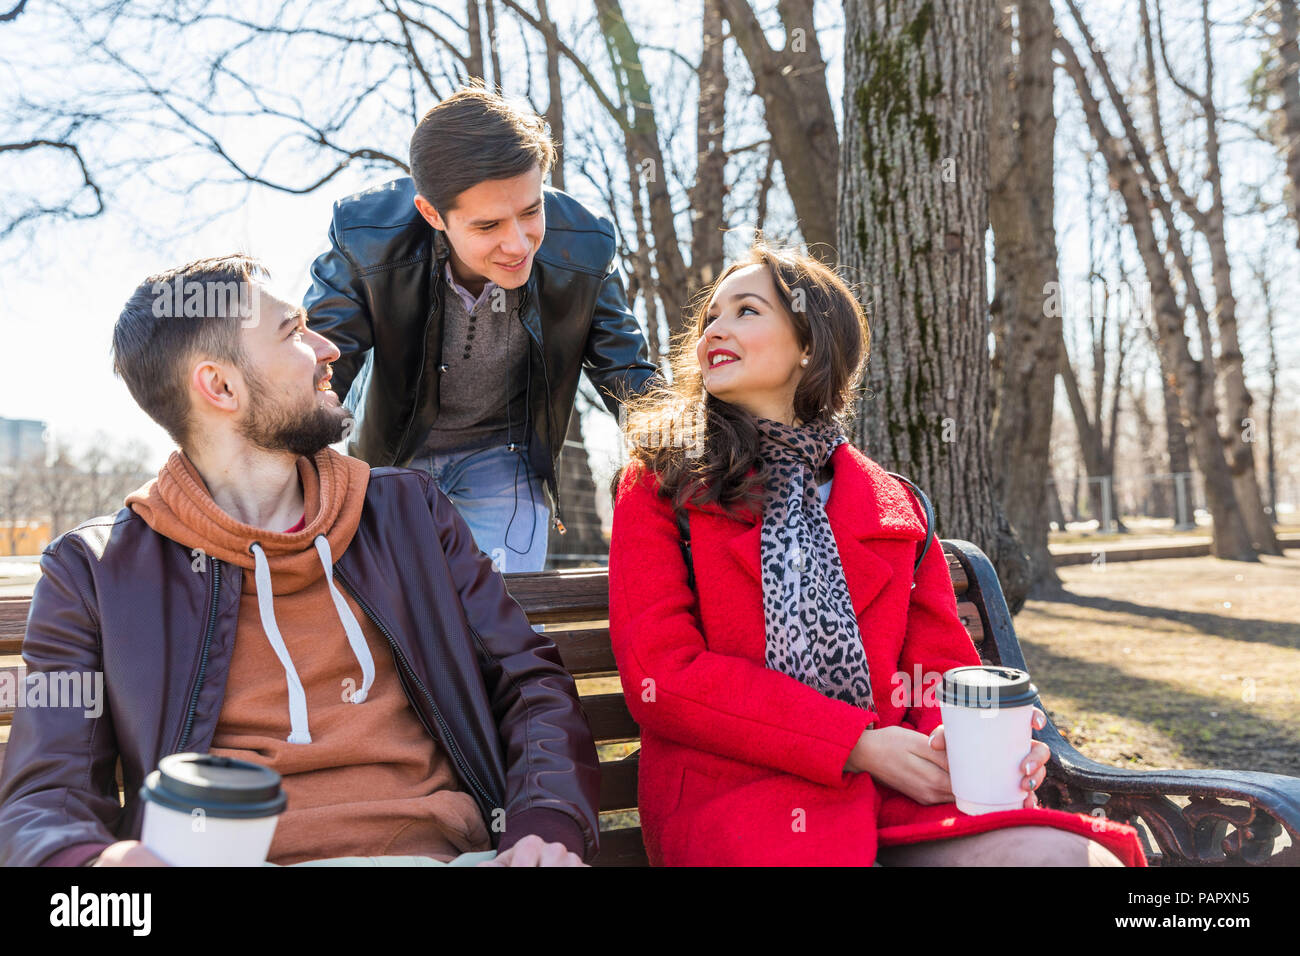 Russia, Moscow, group of friends at park, having fun together, drinking coffee - Stock Image